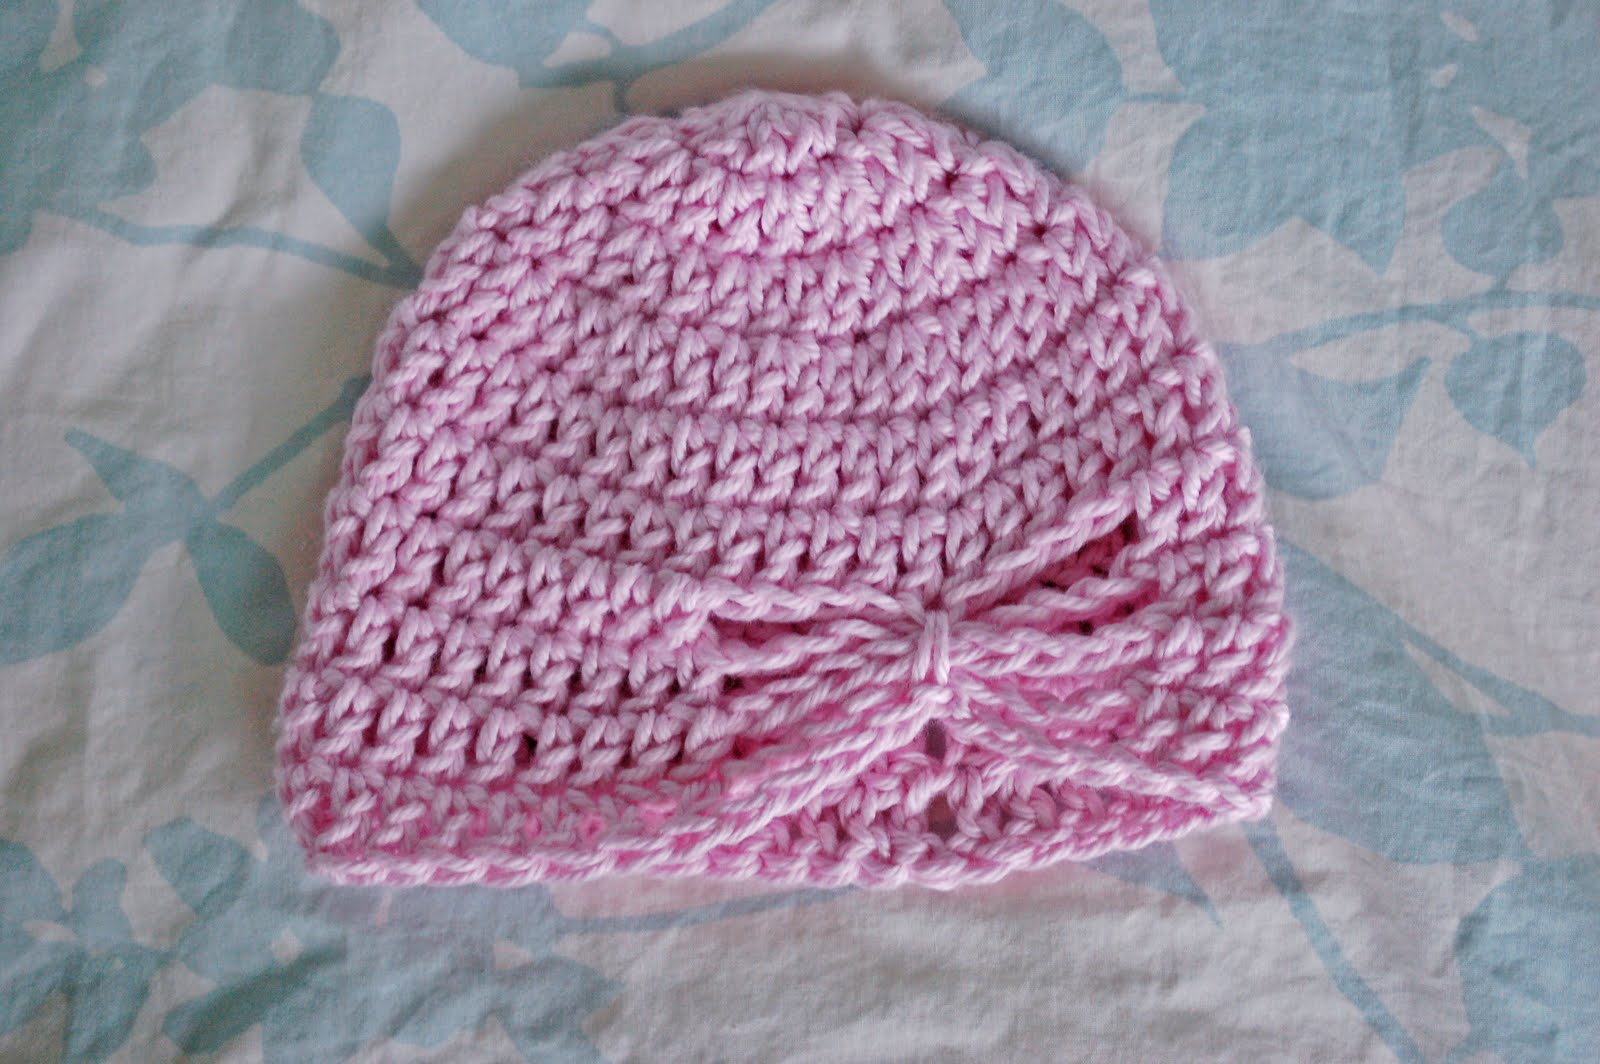 Free Crochet Pattern For A Newborn Hat : Alli Crafts: Free Pattern: Butterfly Hat - Newborn